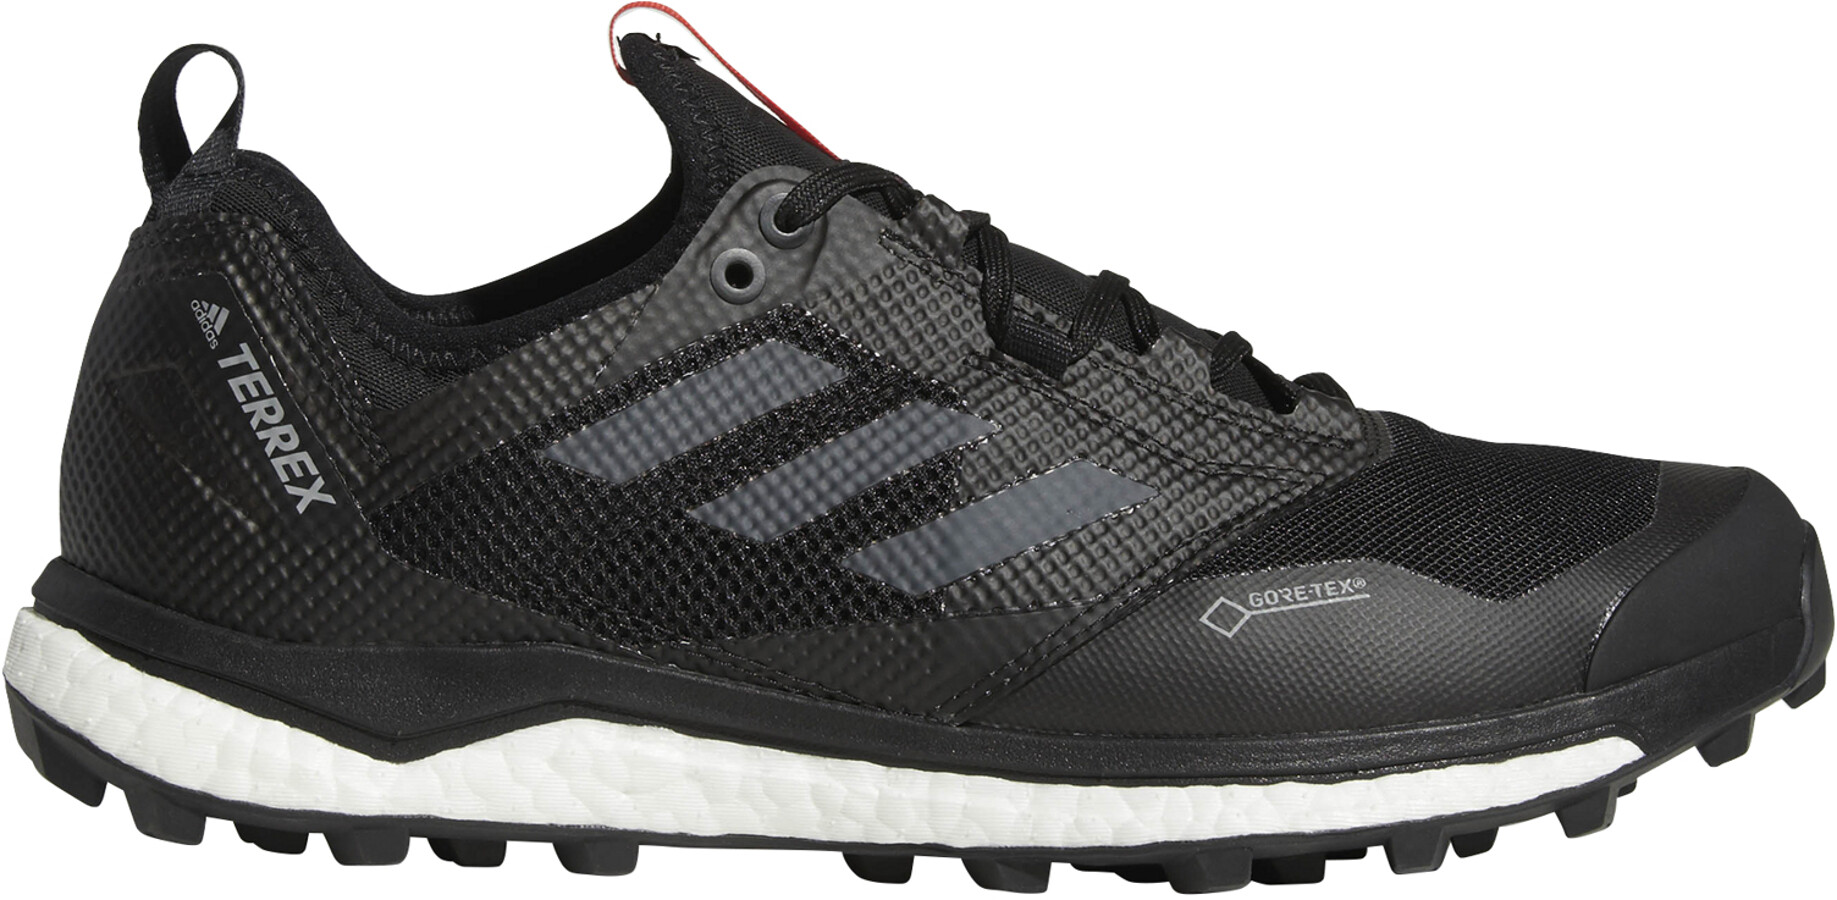 adidas TERREX Agravic XT Gore Tex Trailrunning Schoenen Heren, core blackgrey fivehi res red